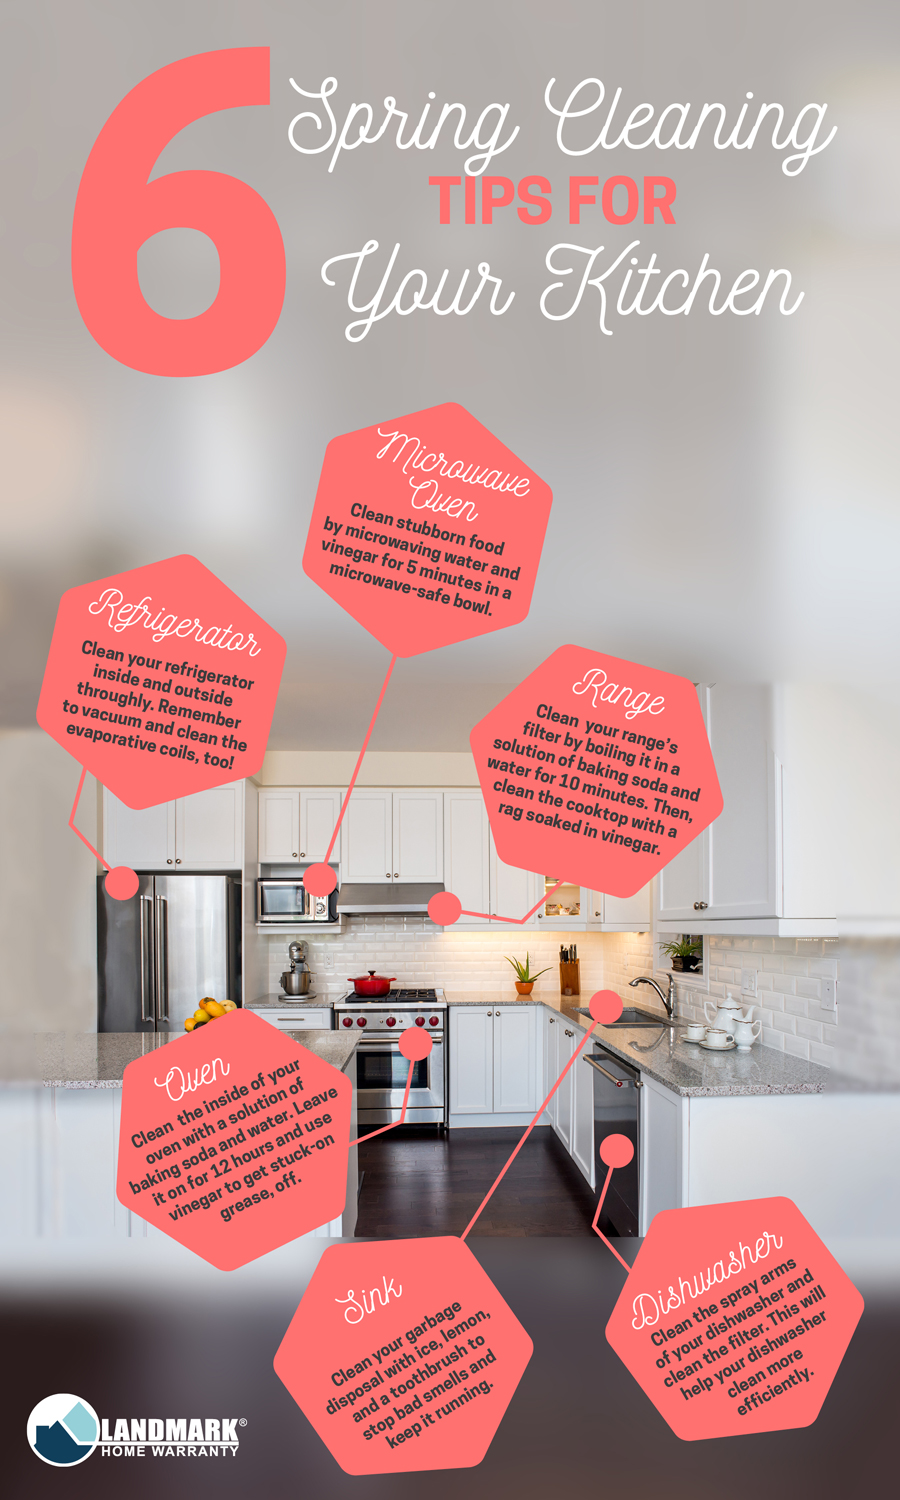 Spring cleaning tips for your home.